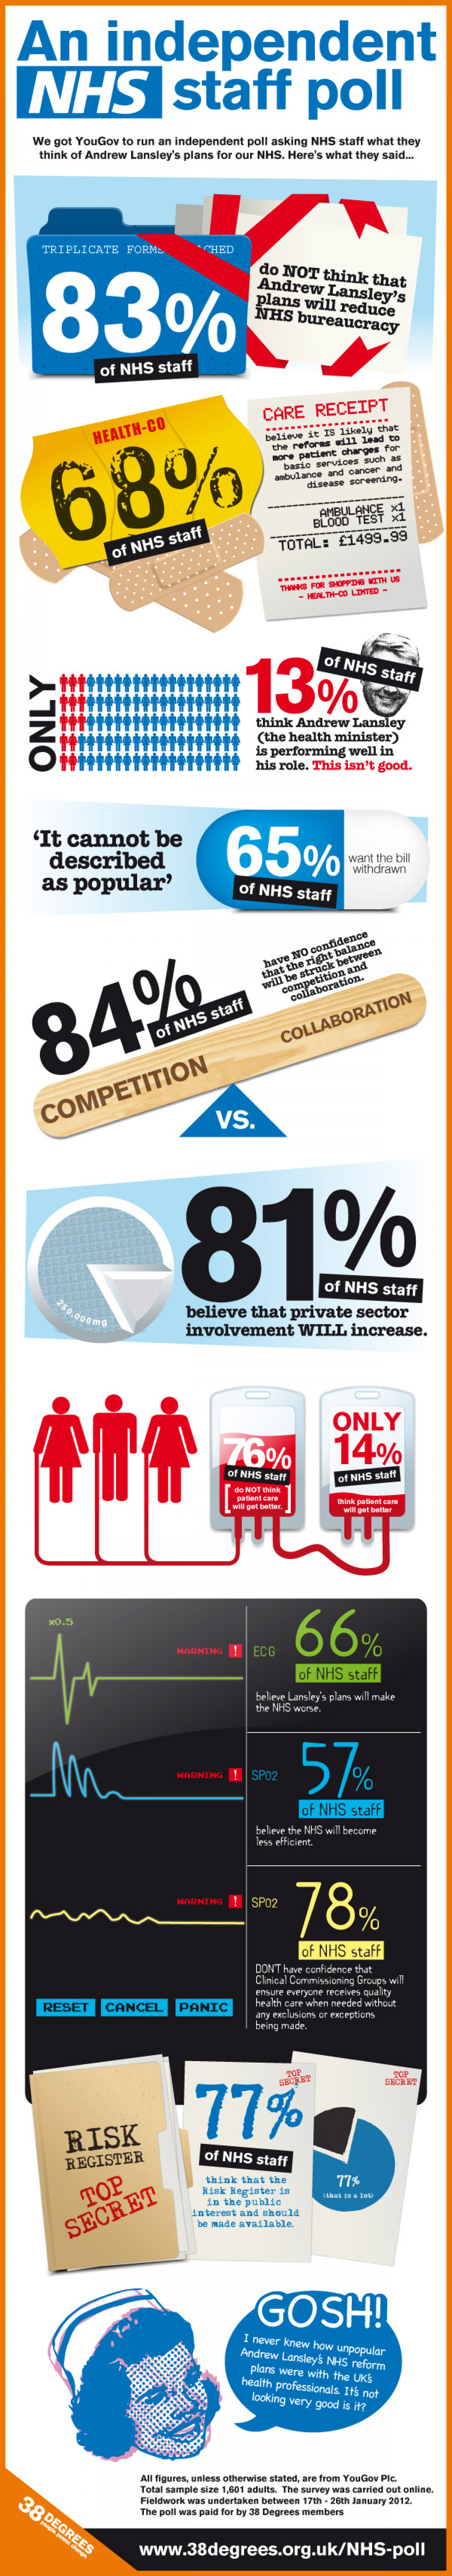 An Independent NHS Staff Poll Infographic